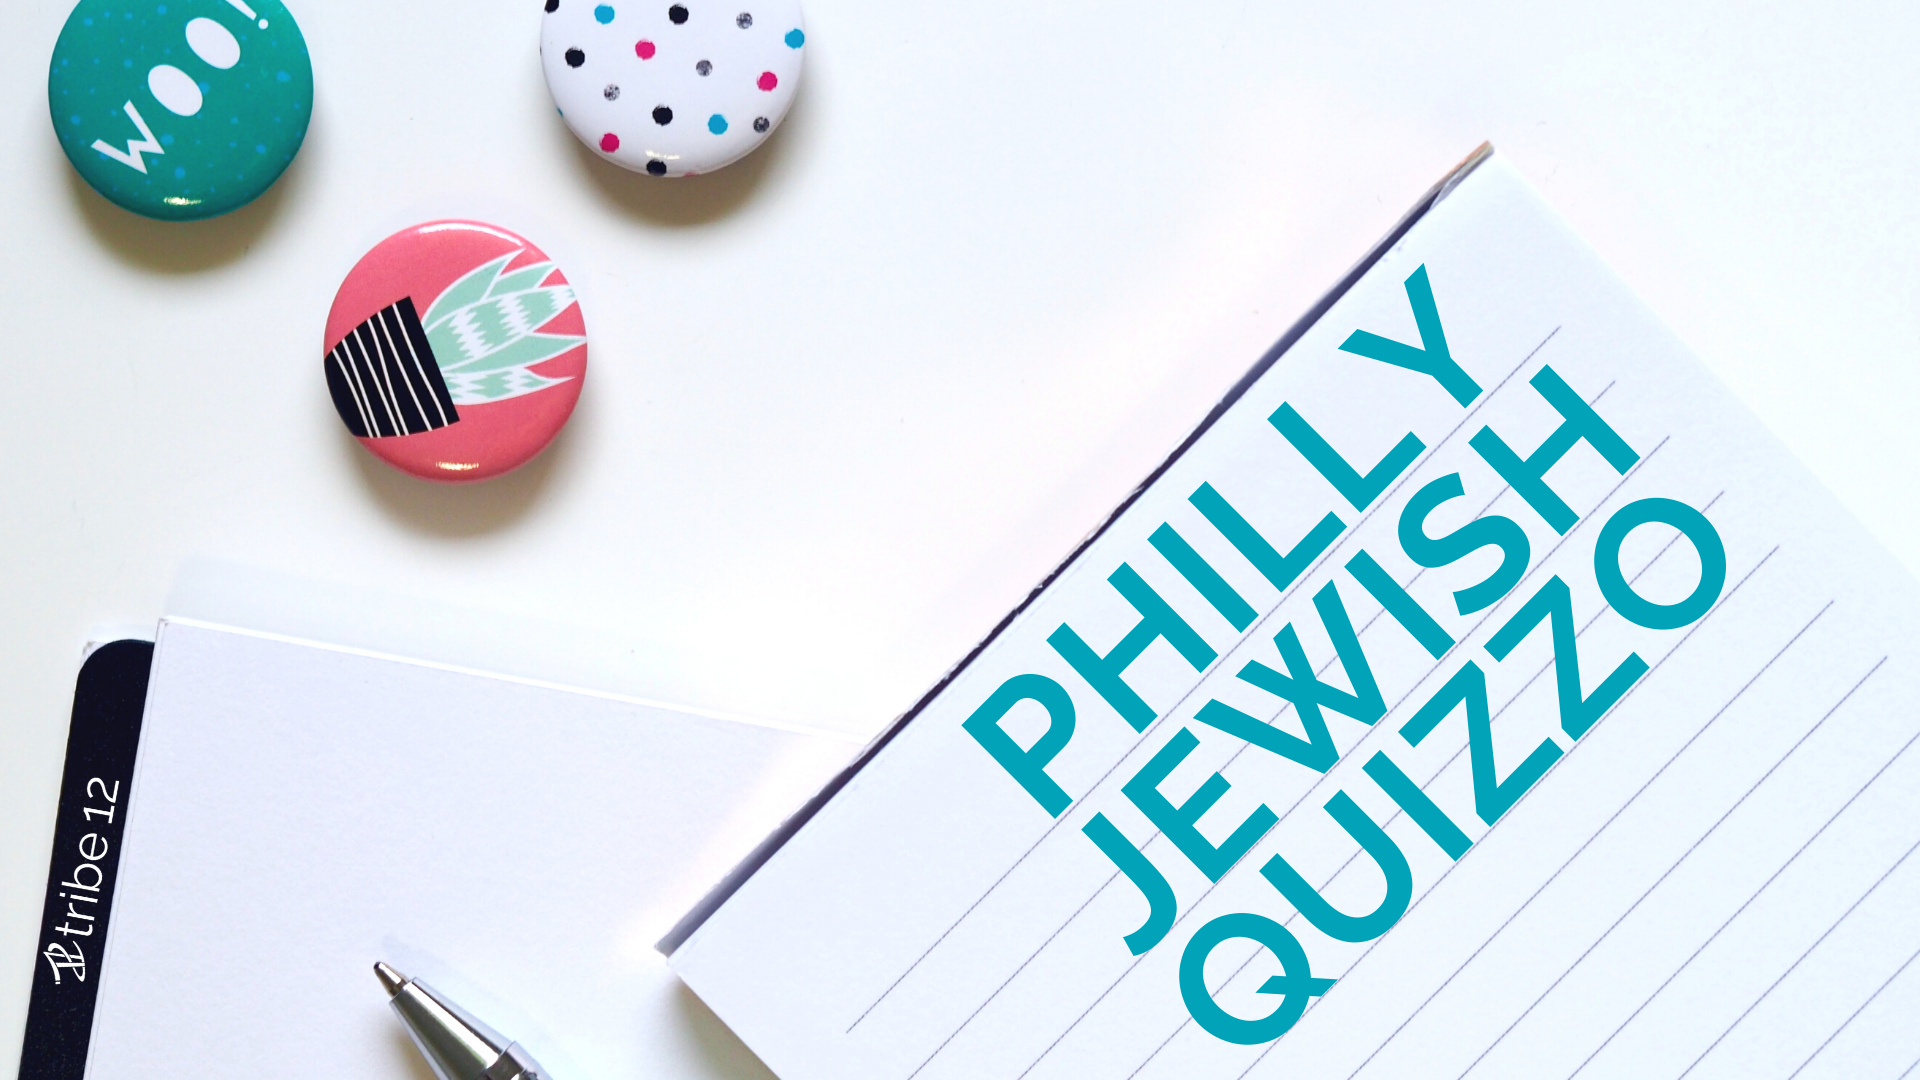 Philly Jewish Quizzo written on a notepad with a smaller notepad with Tribe 12 written on it and three colorful buttons scattered nearby as if on a desk